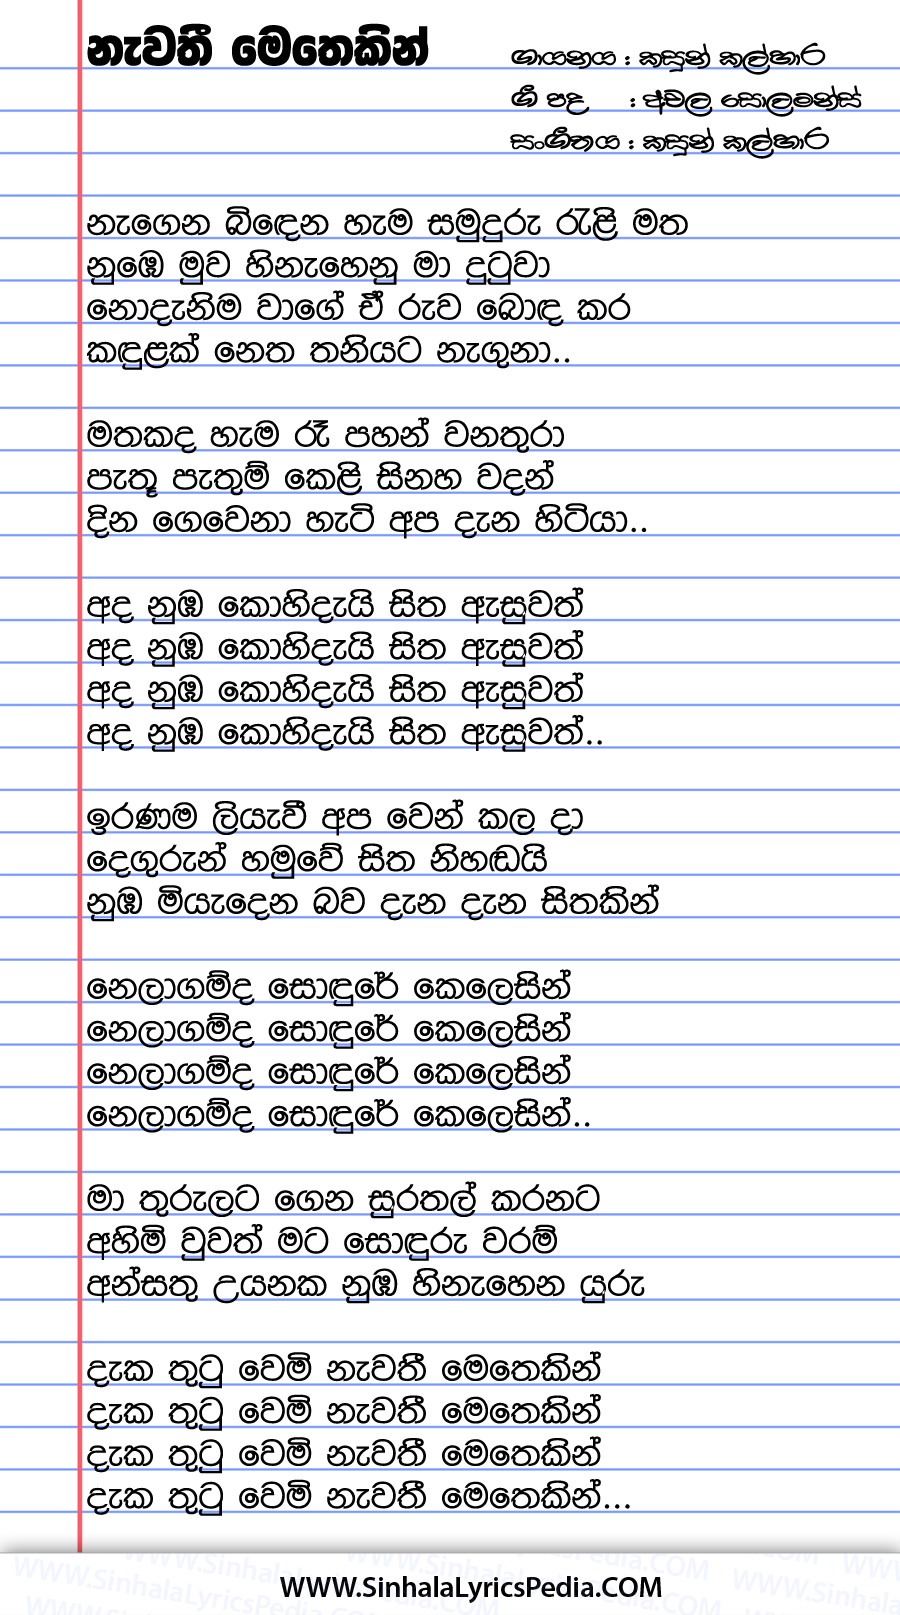 Nawathi Methekin (Nagena Bindena Hama) Song Lyrics